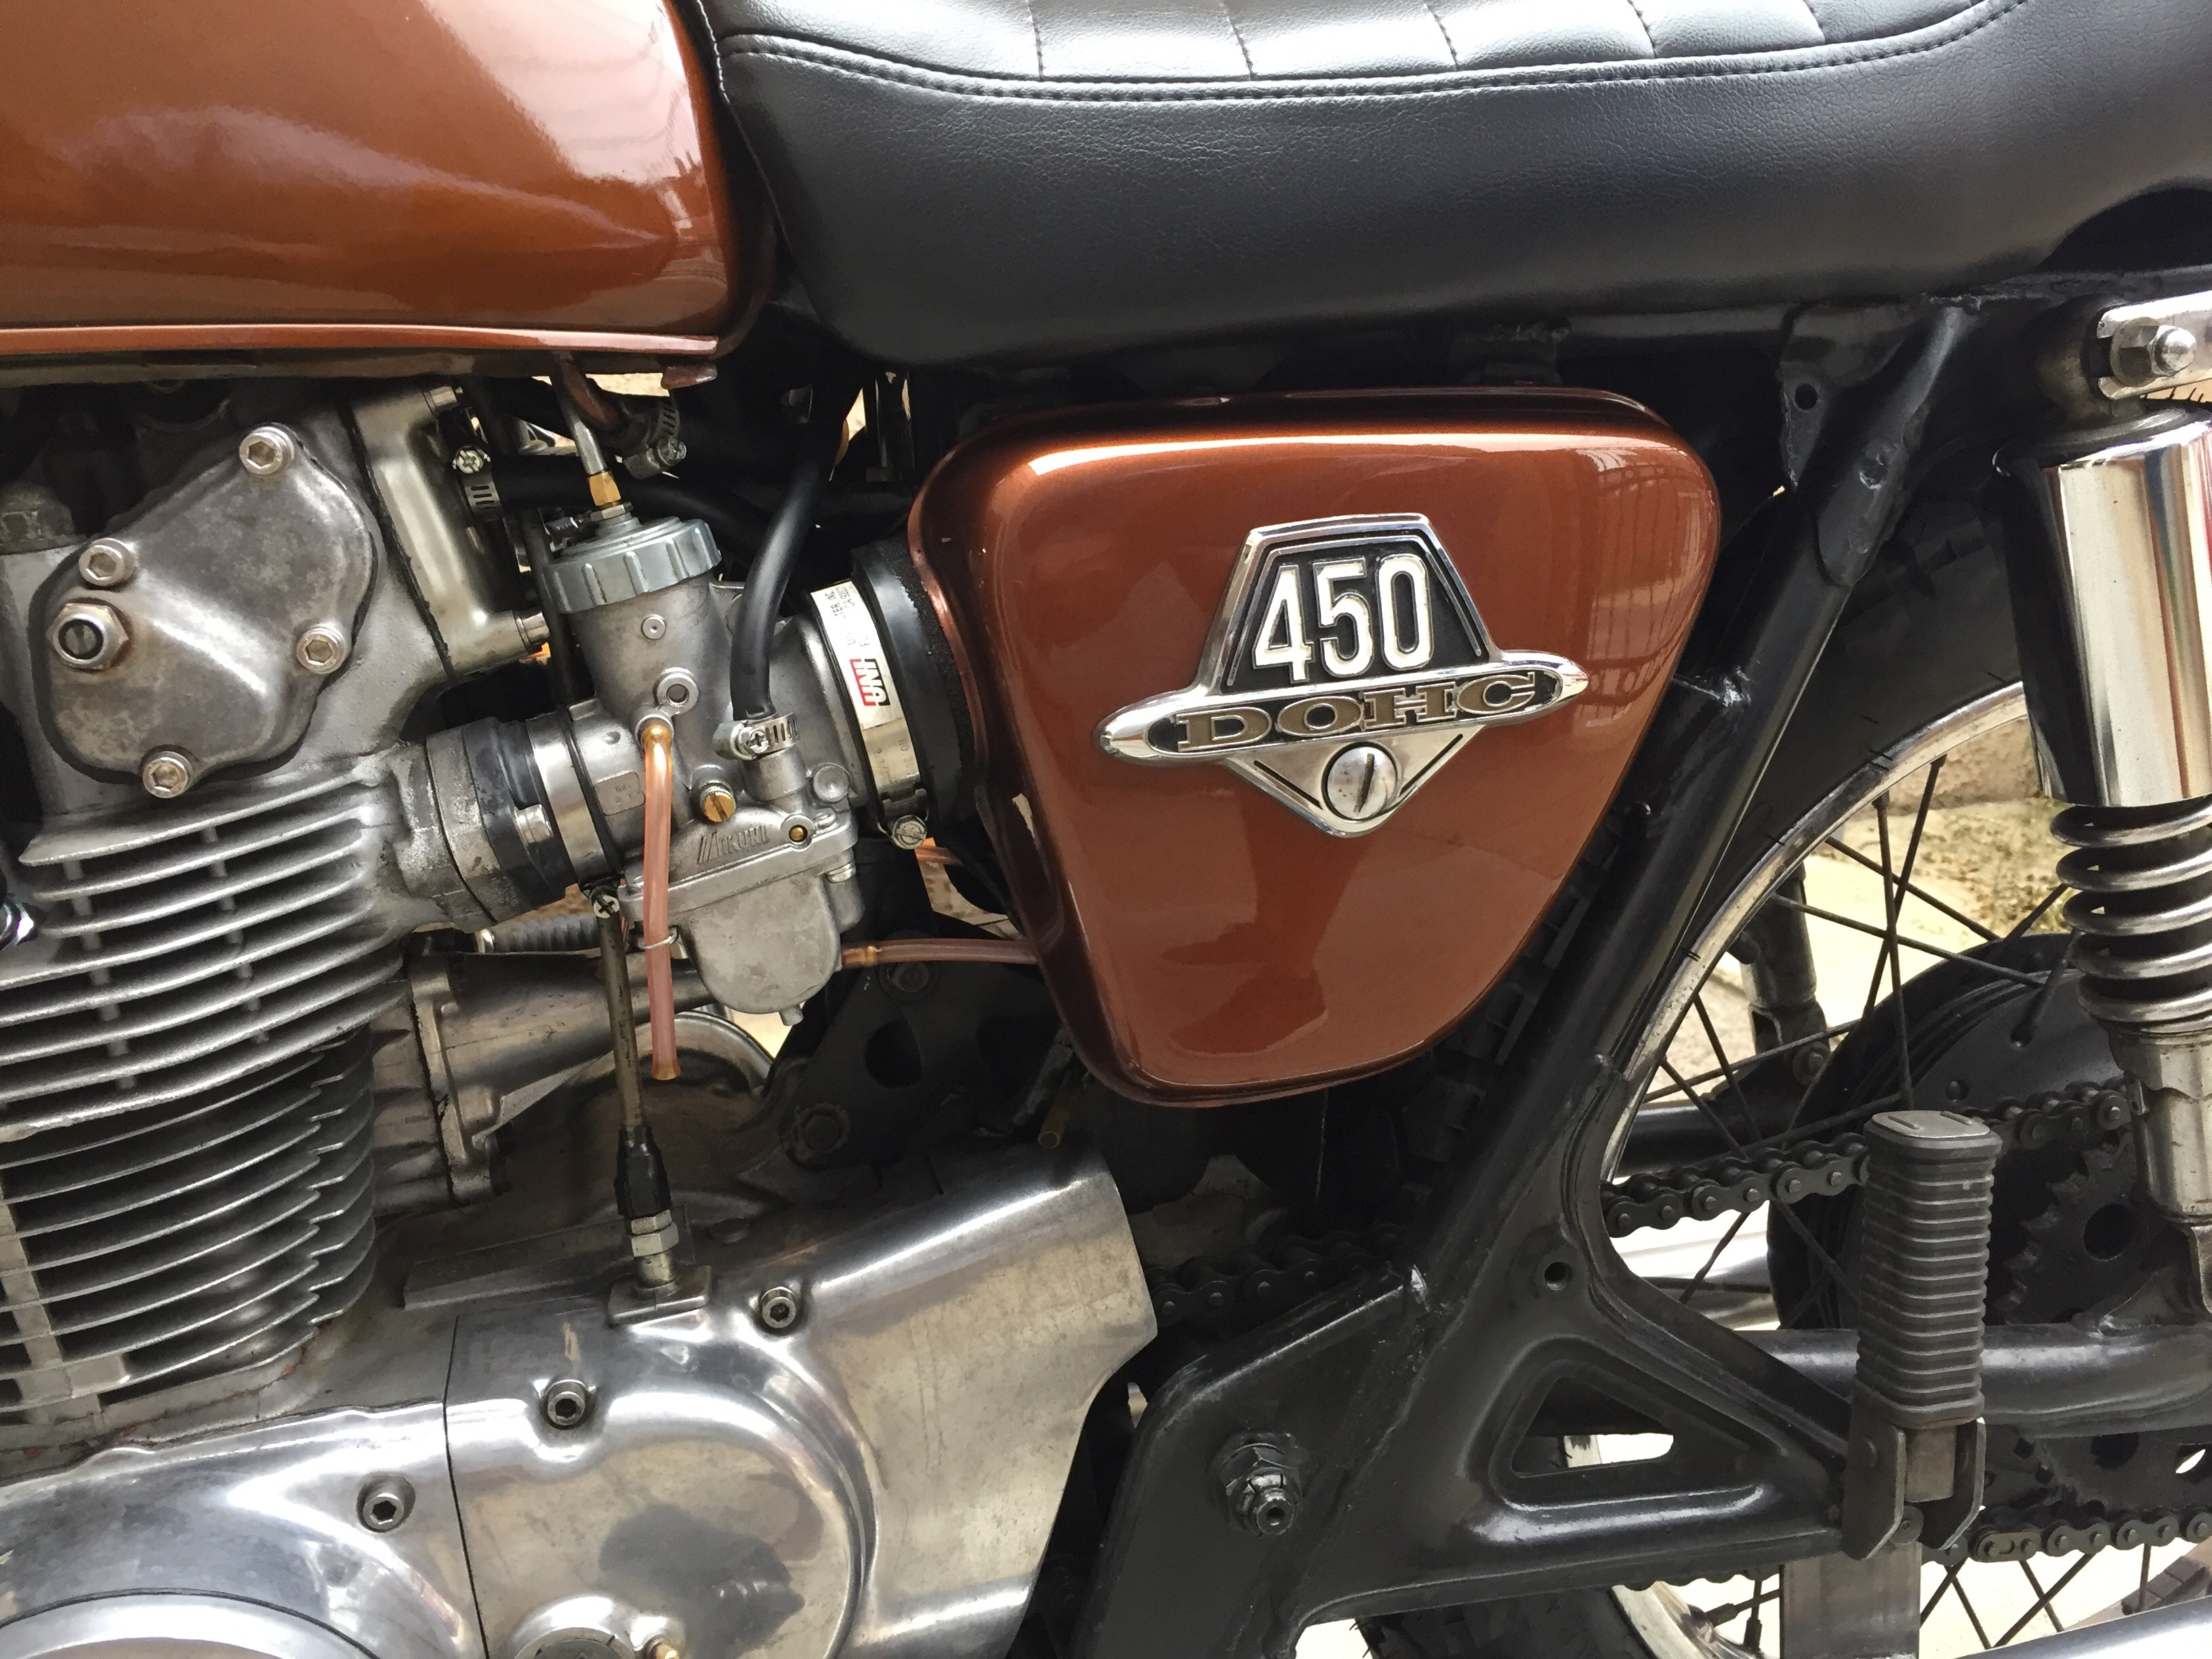 Cb450 performance camshaft - Chin on the Tank – Motorcycle stuff in